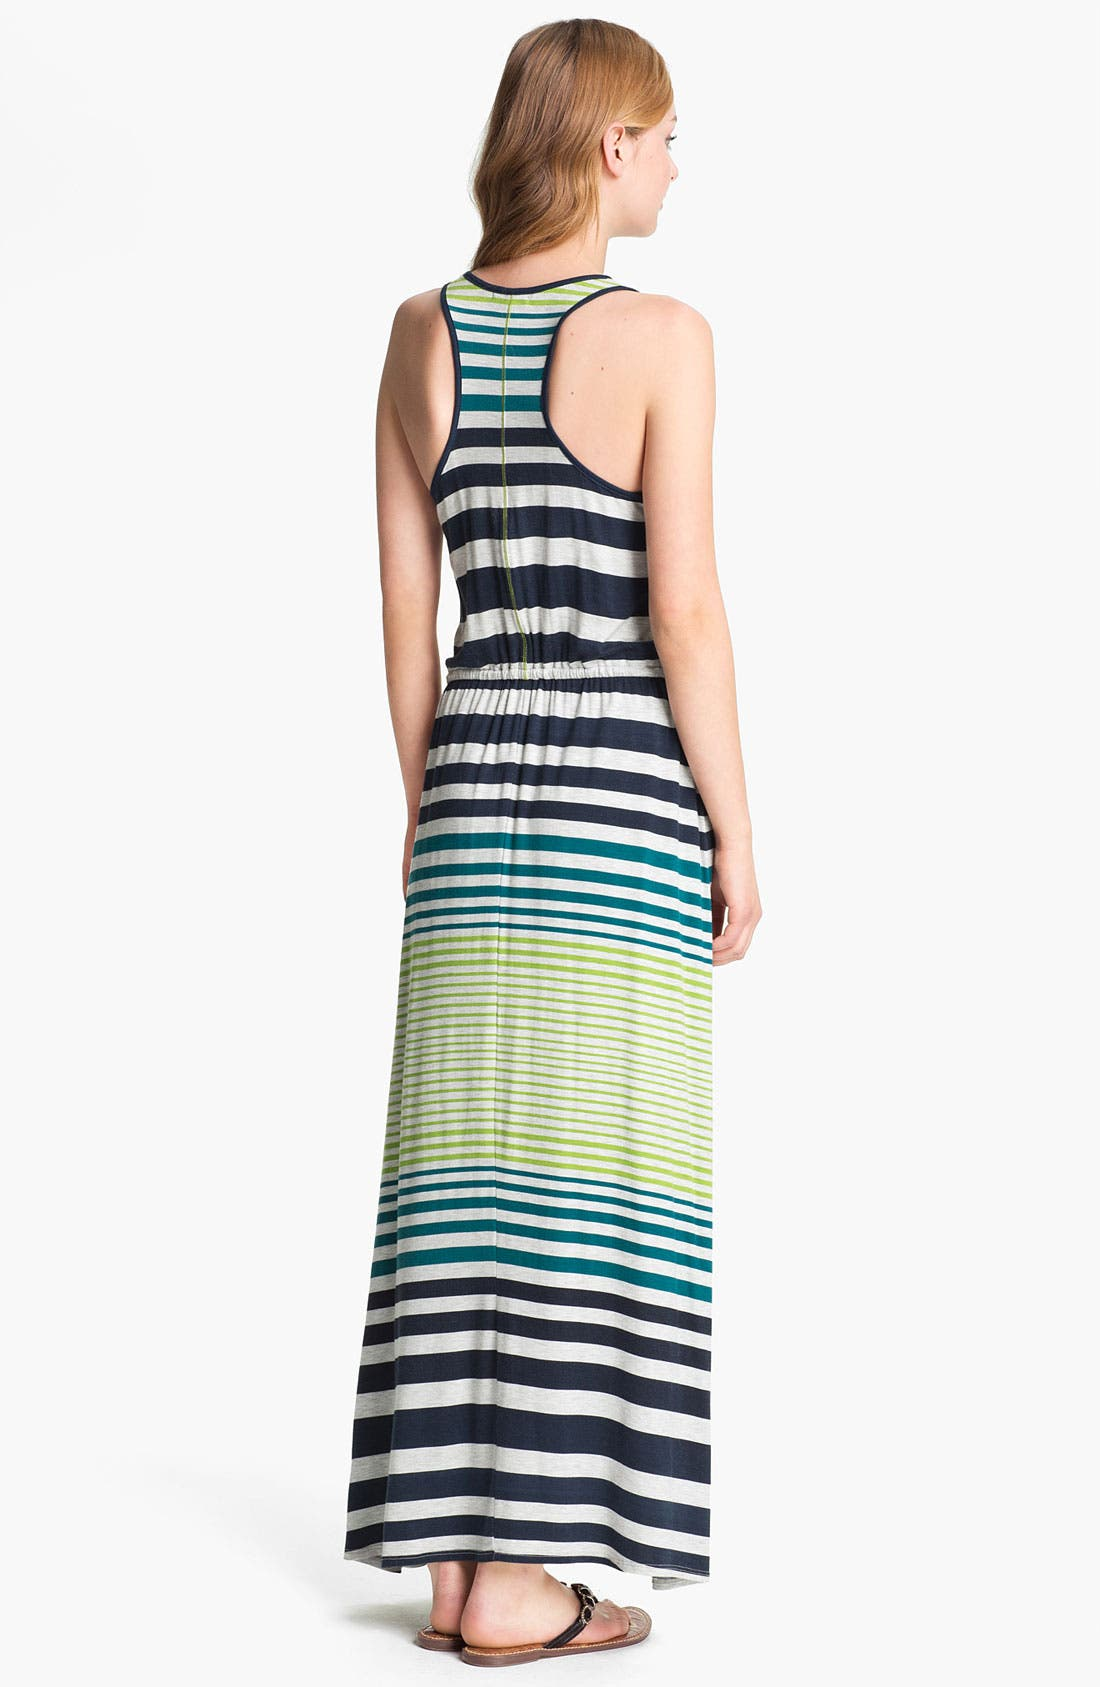 Alternate Image 1 Selected - Max & Mia Drawstring Waist Maxi Dress